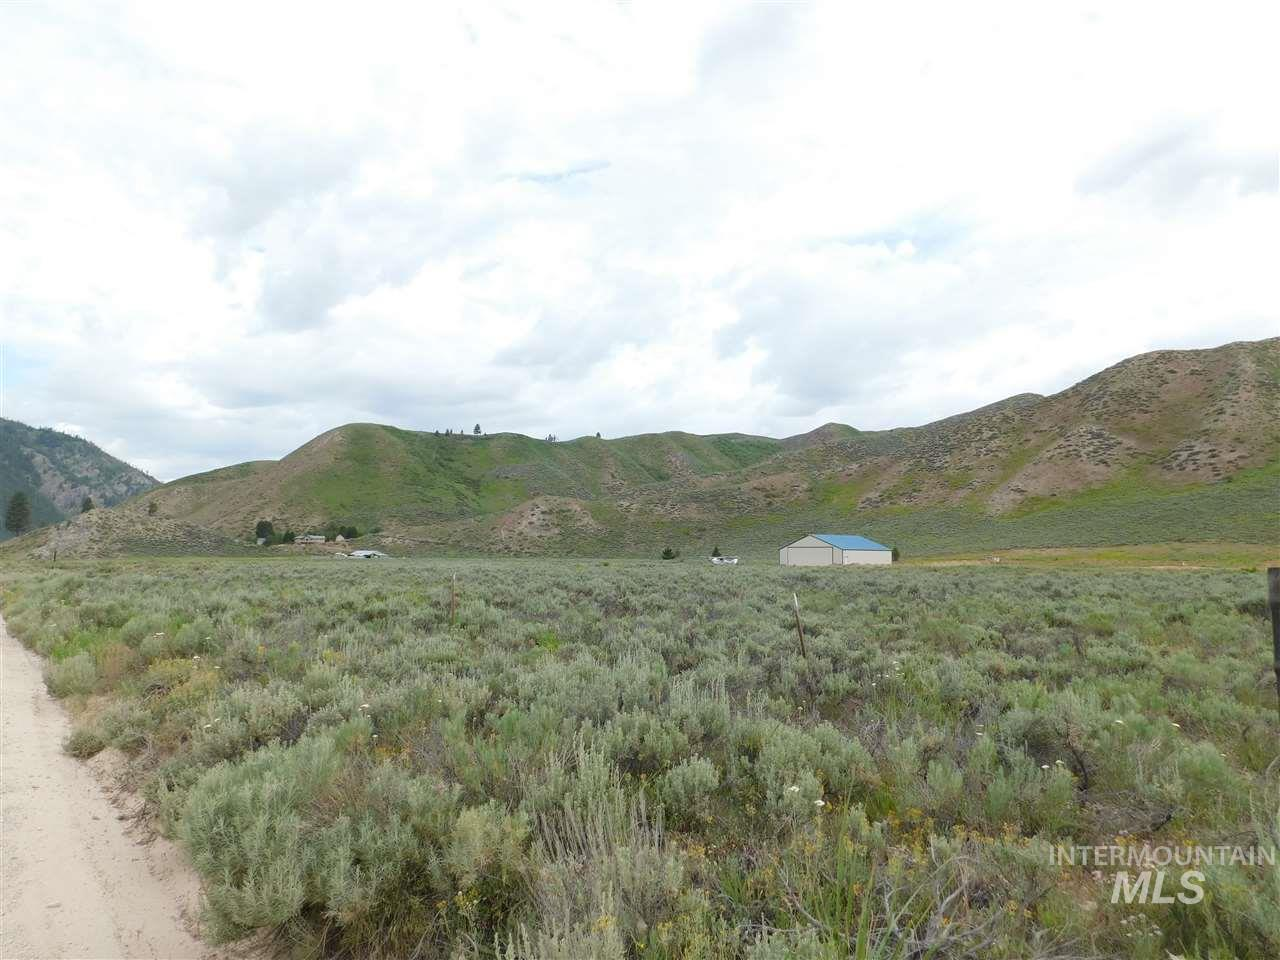 Lot 14 Blk 3 South Fork Ranch Sub, Featherville, Idaho 83647, Land For Sale, Price $75,000, 98725626